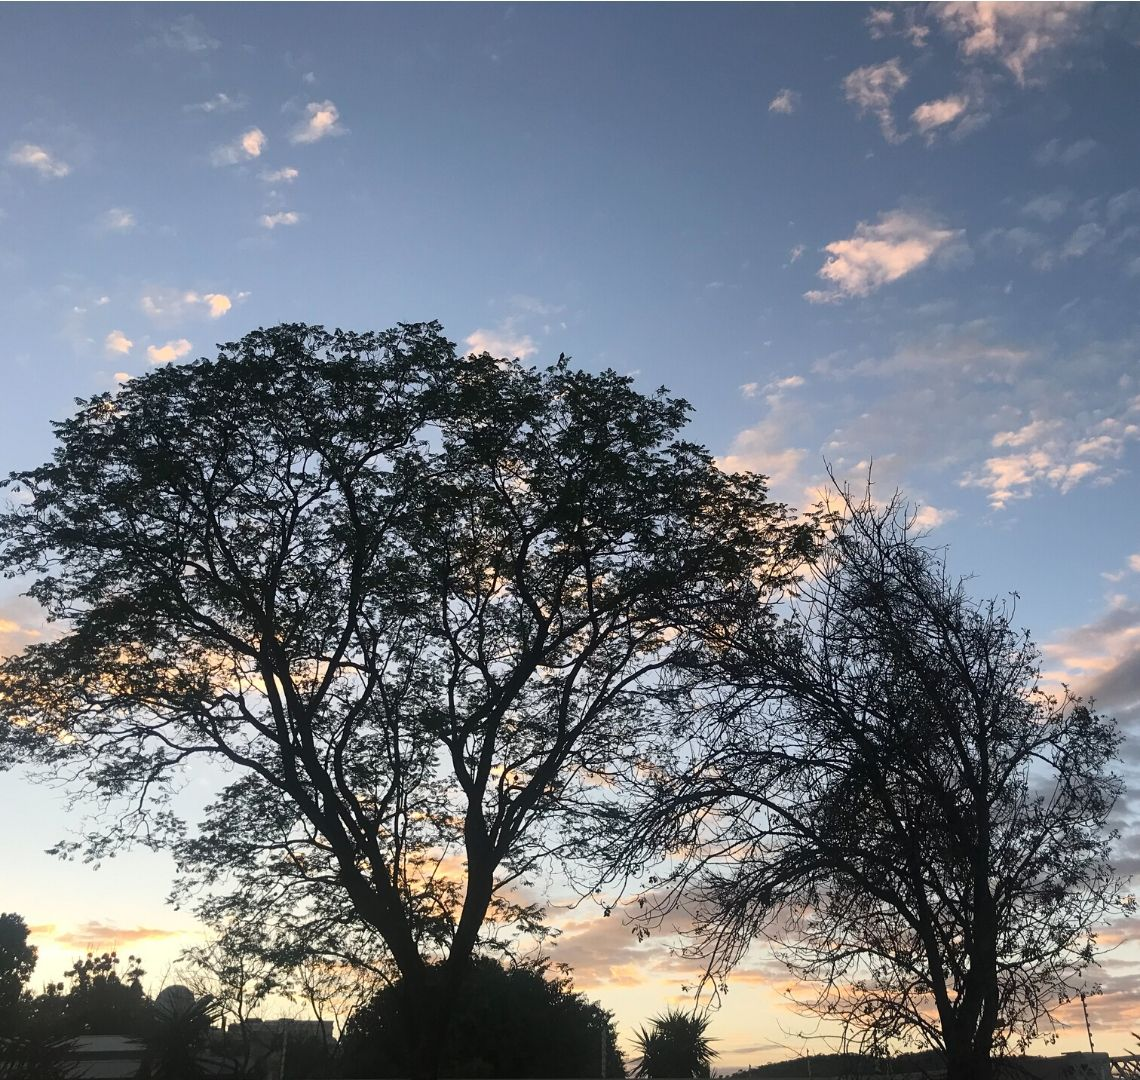 2 Week Namibia Itinerary - sunrise through the trees in Windhoek on our first morning in Namibia. The sky is a combination of watery blues with a touch of purple and pale yellows and oranges. There are the black silhouettes of trees in the foreground.